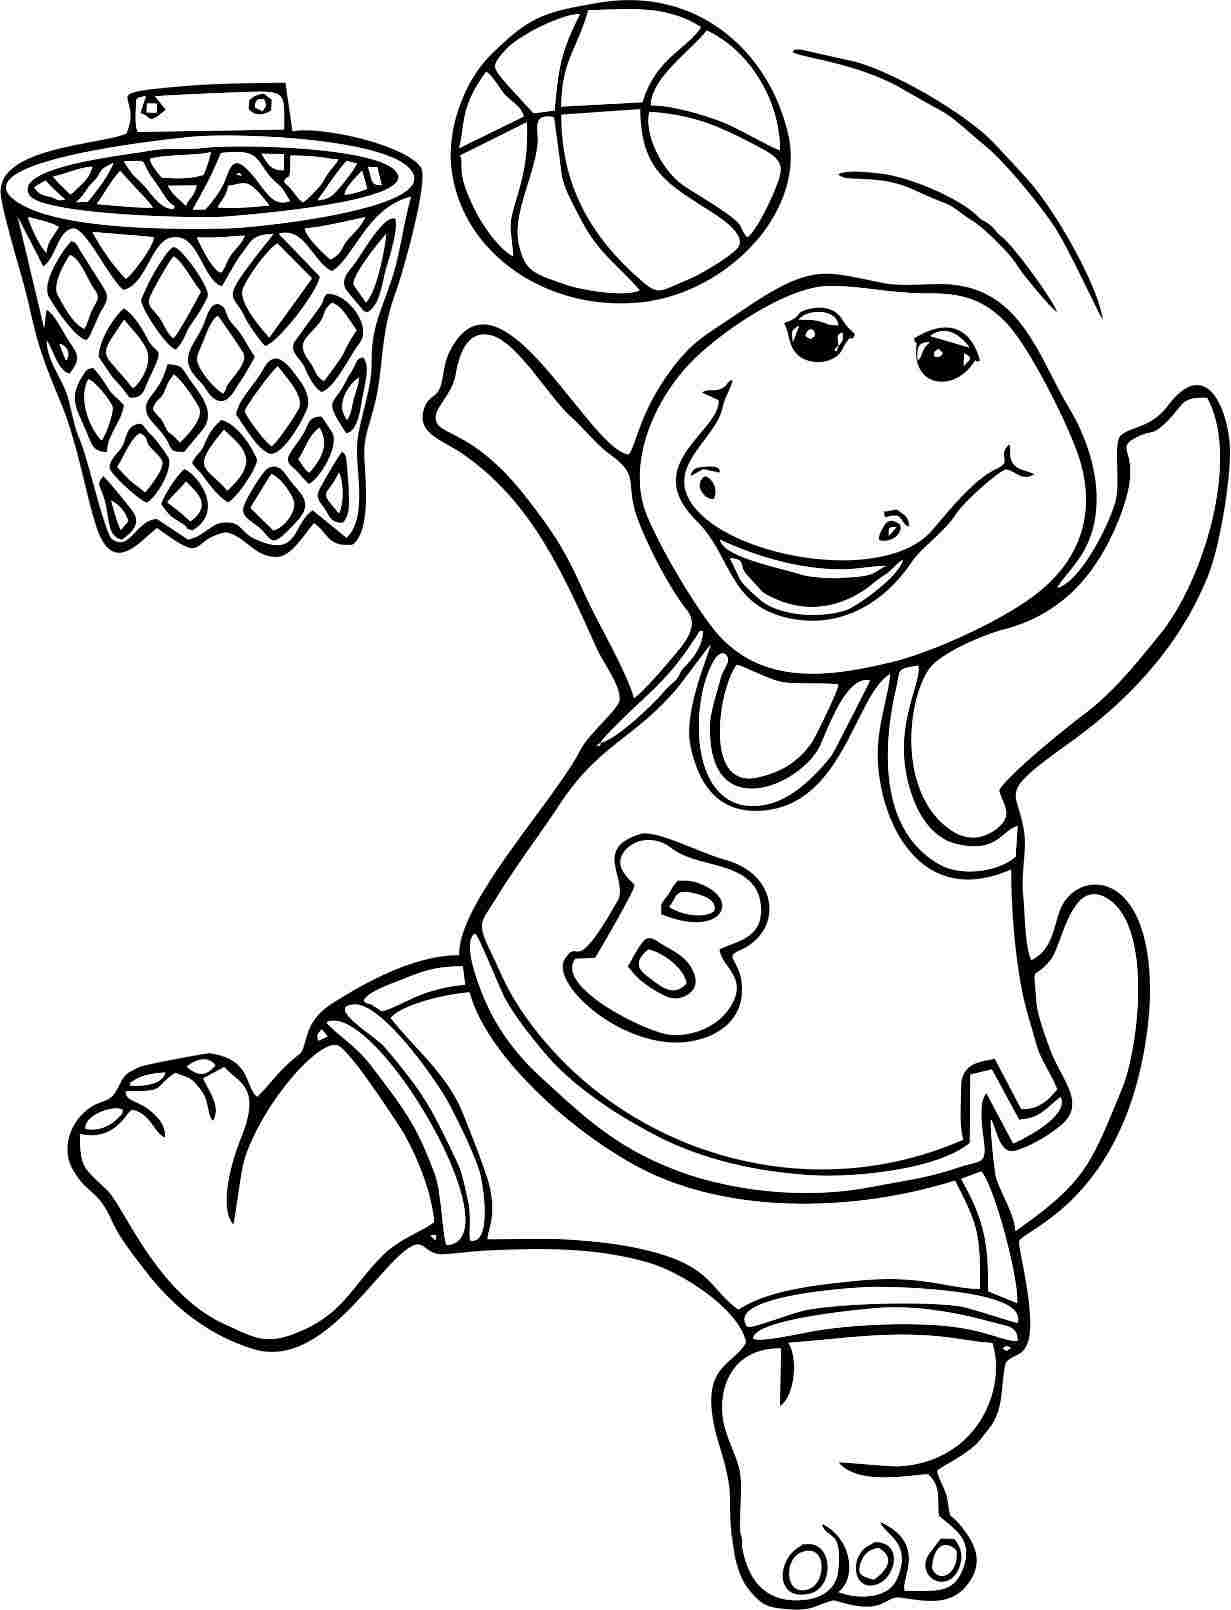 Barney Coloring Pages For Preschoolers